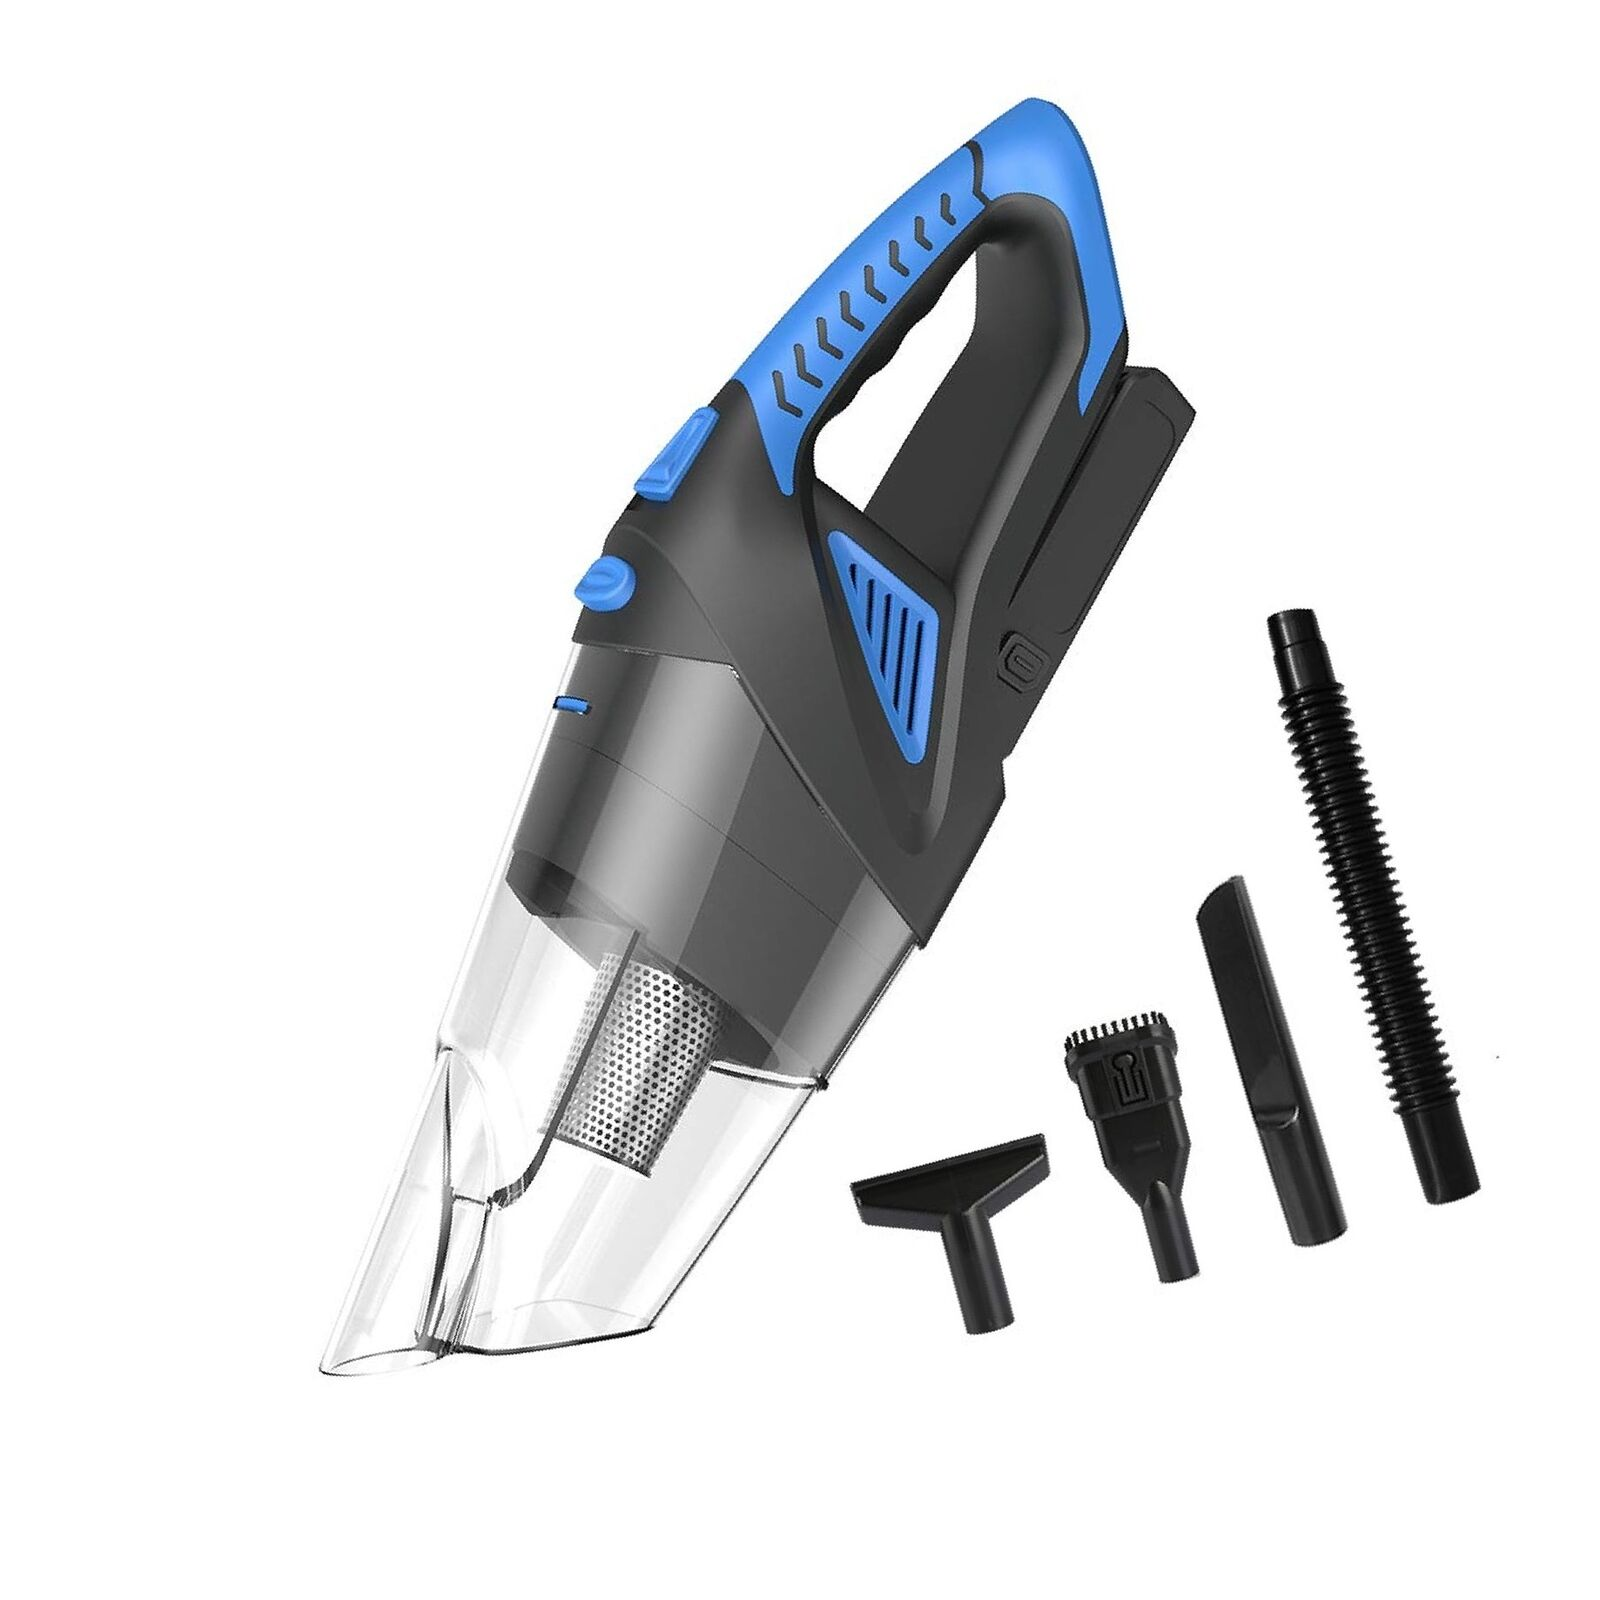 Cordless Vacuum, 12V 120W Portable Cordless Vacuum Cleaner, Wet & Dry Hand-he...